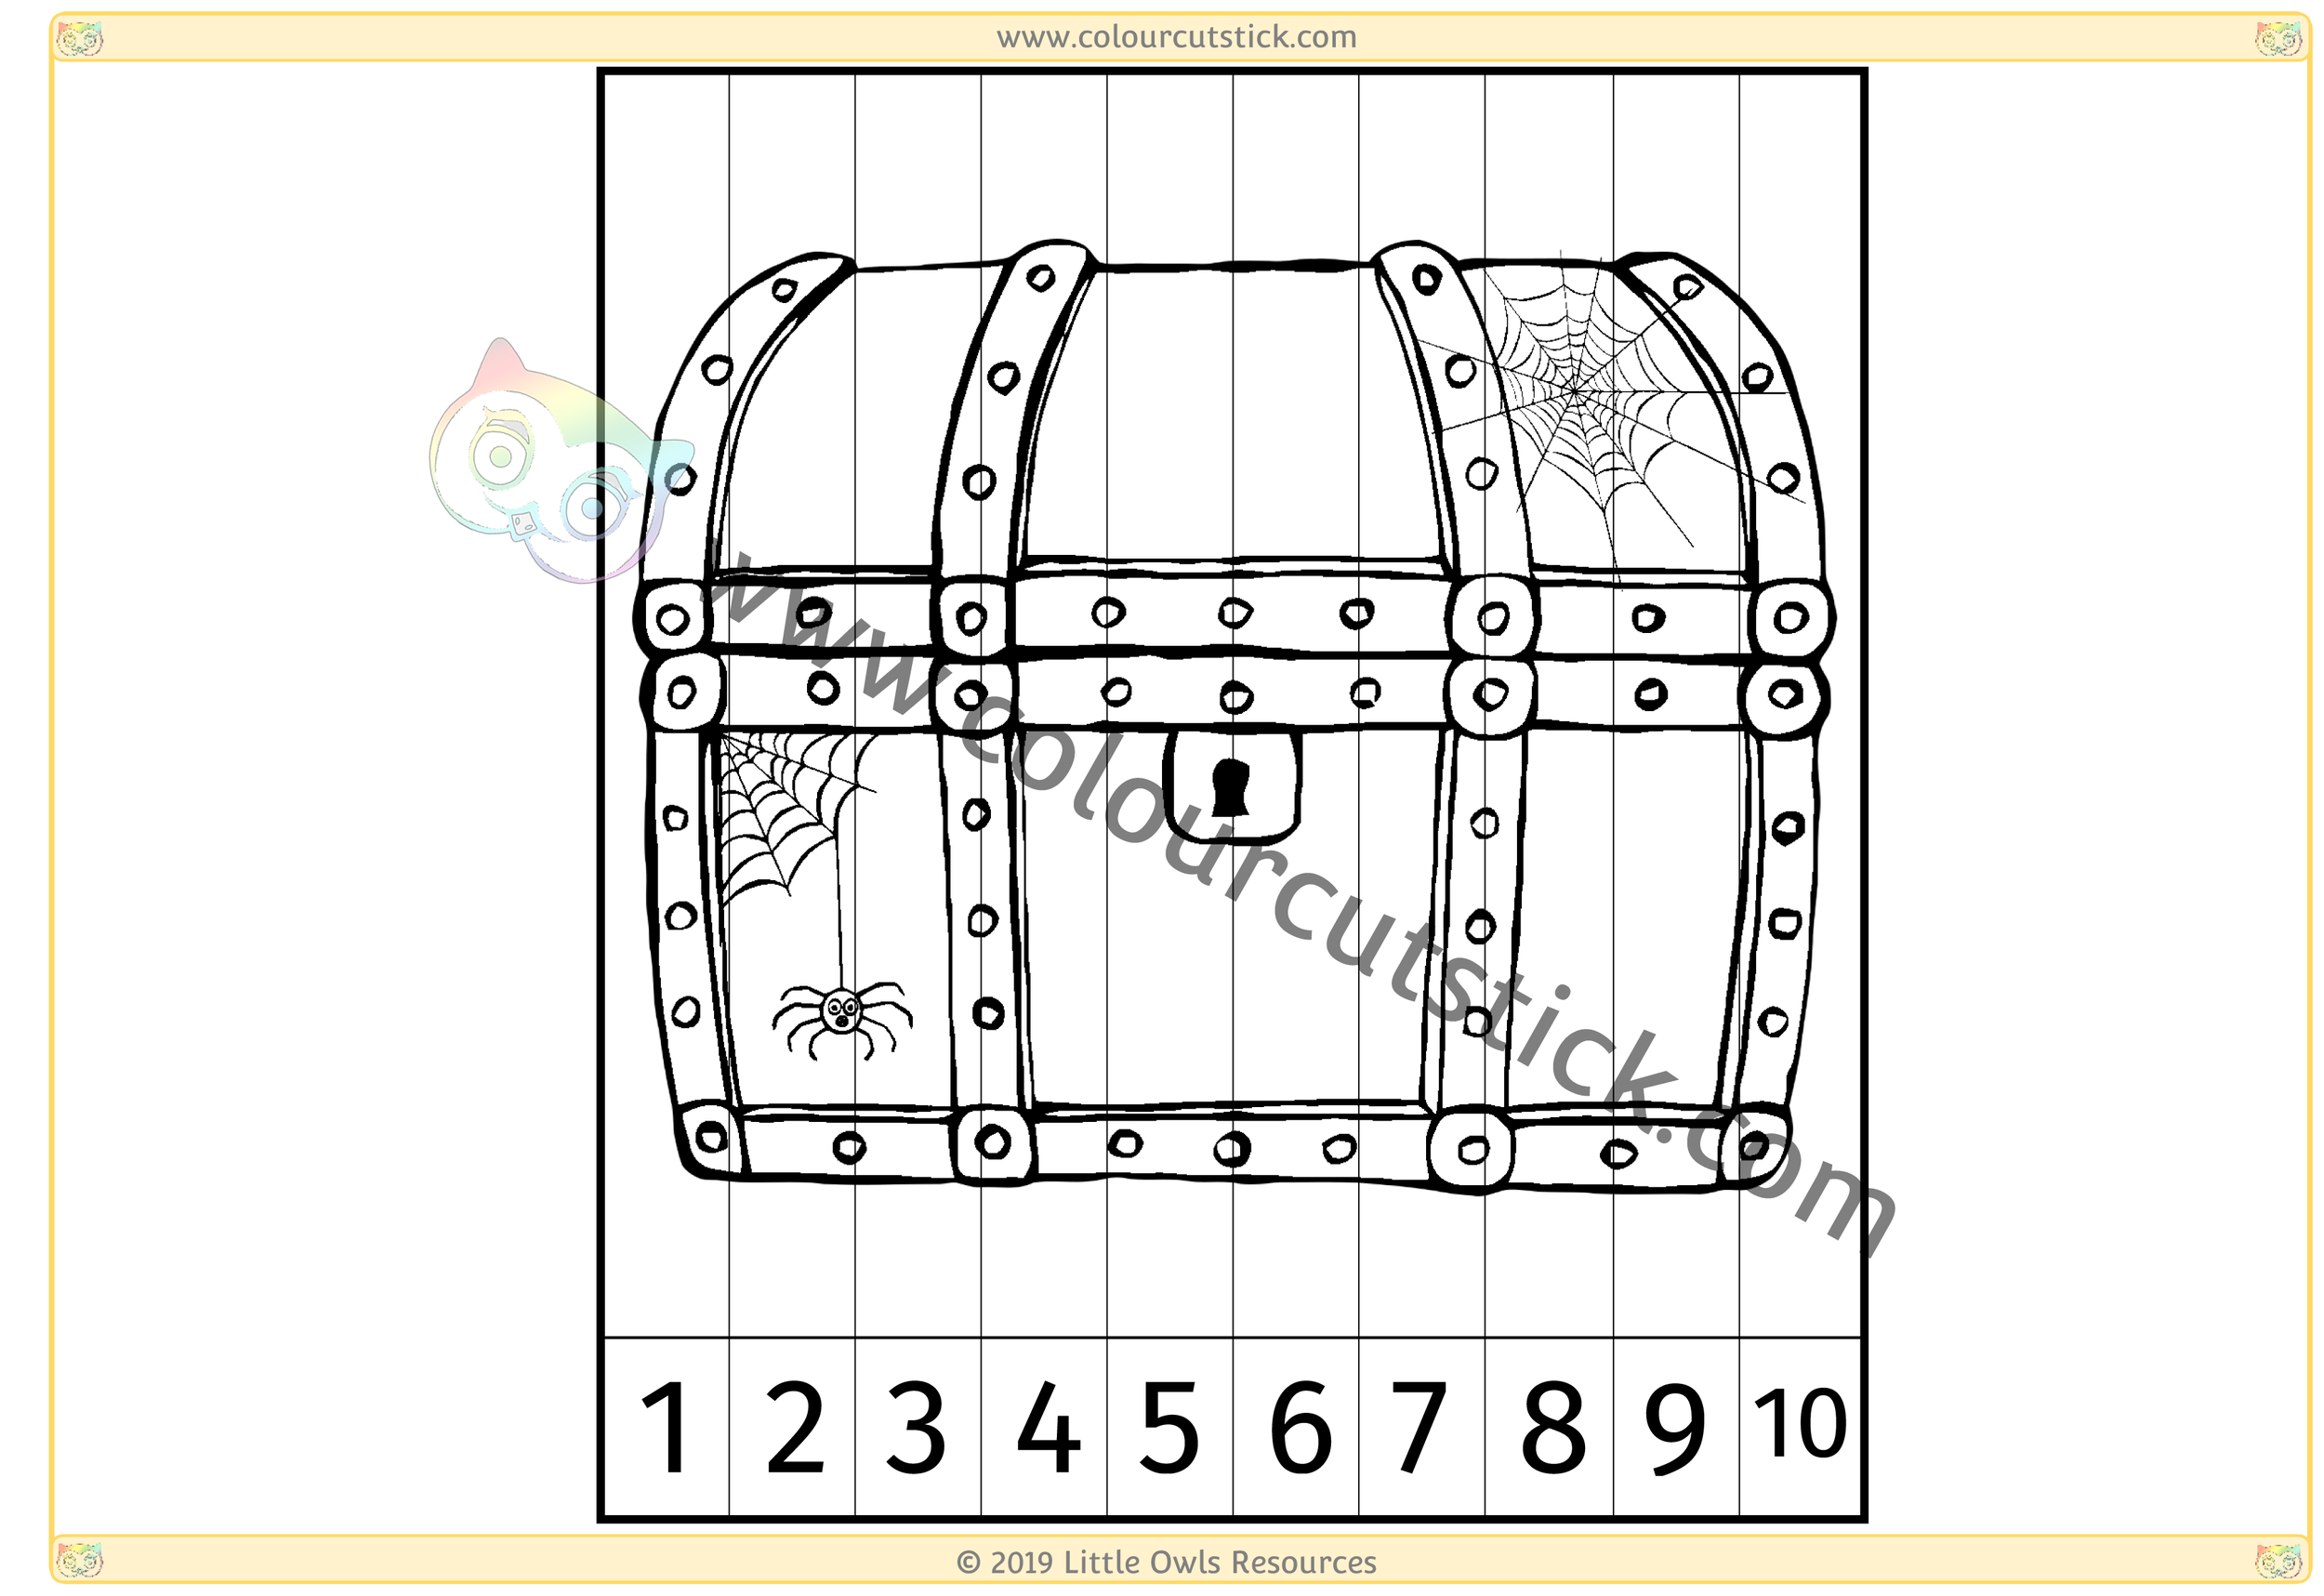 Spooky Chest Number Slice Puzzle 1-10 -